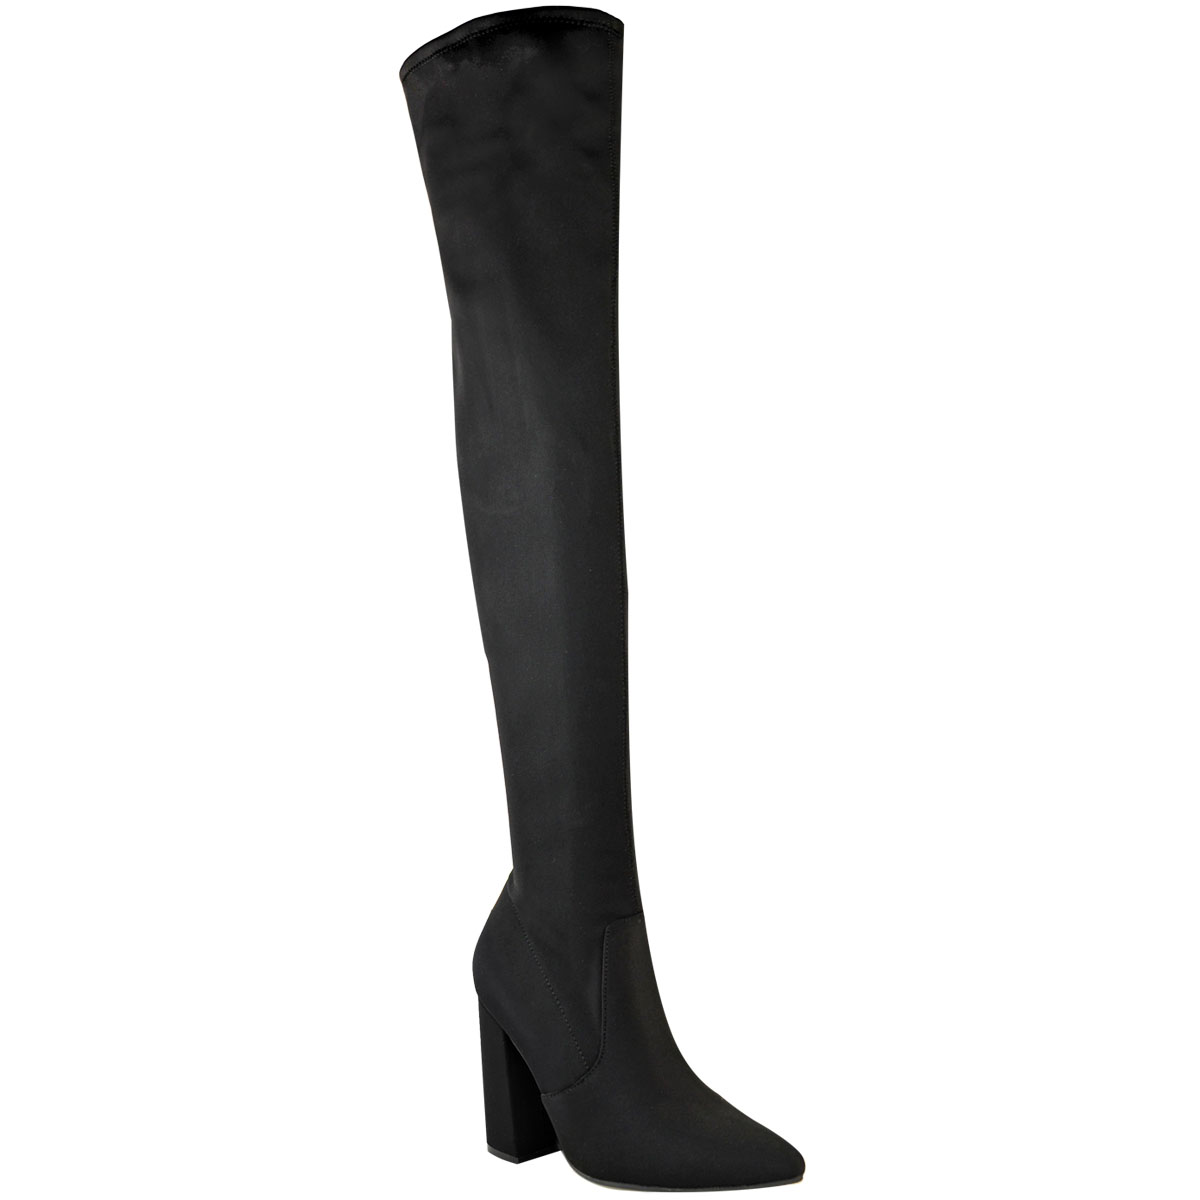 Womens-Ladies-Thigh-High-Boots-Lycra-Over-The-Knee-Pointy-Block-High-Heels-Size Indexbild 3